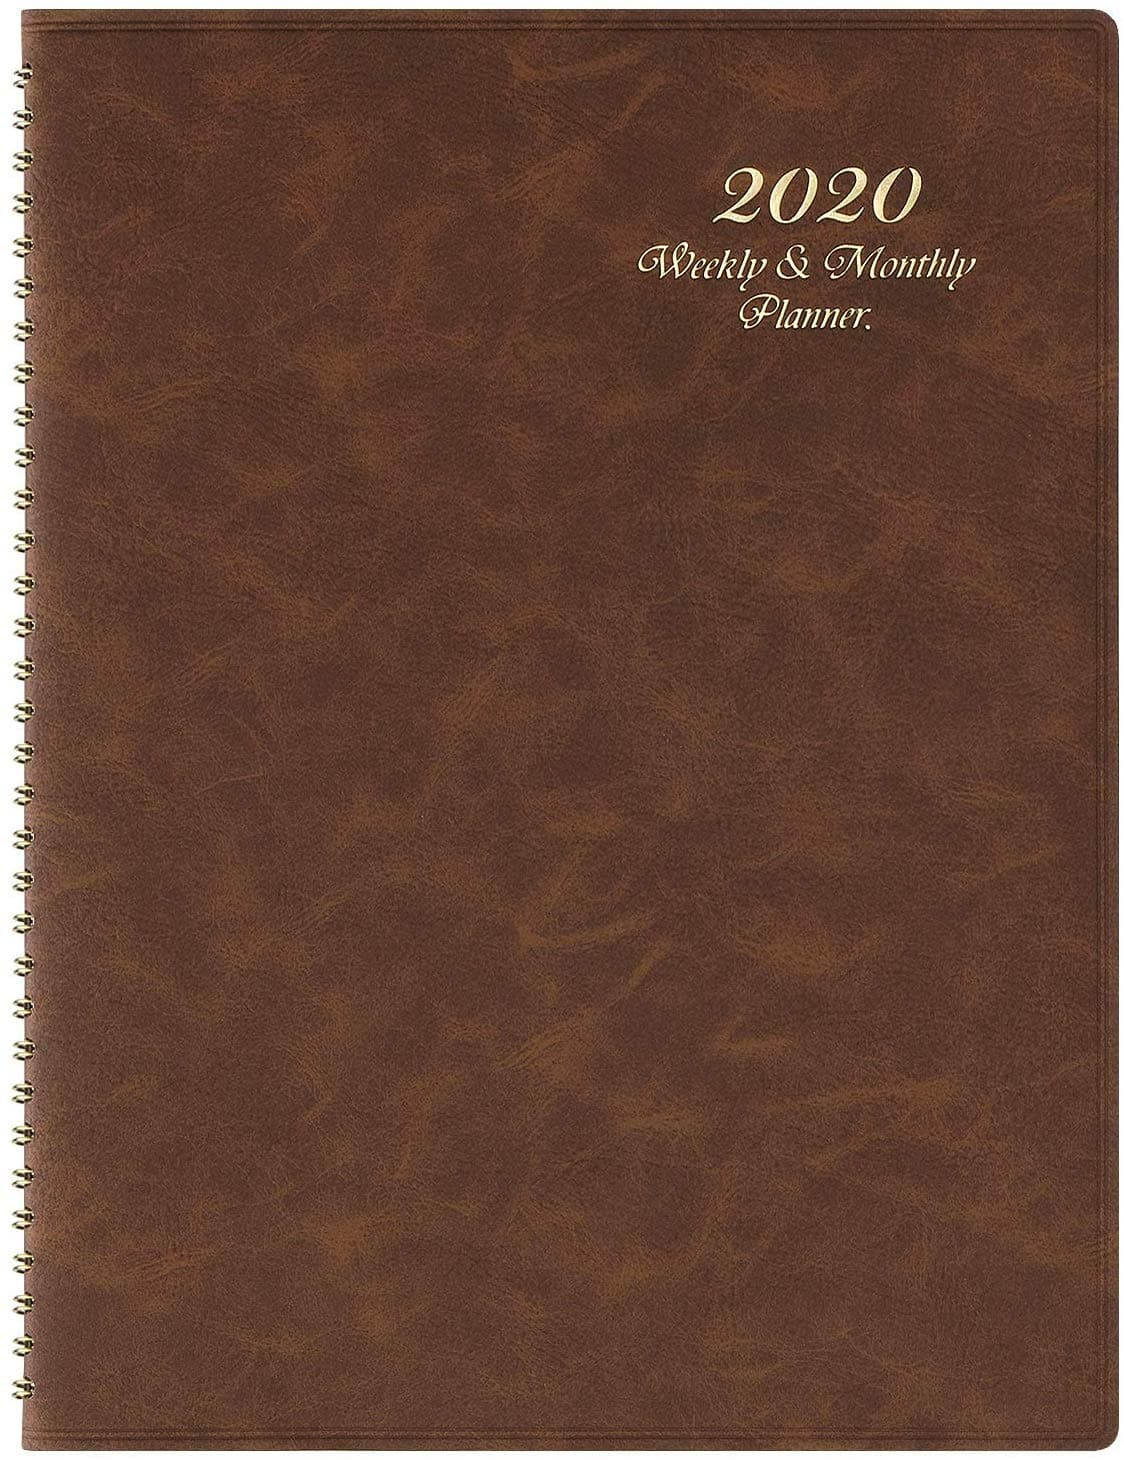 "2020 Planner - 2020 Weekly & Monthly Planner  8.7"" x 11.4"" $6.99"